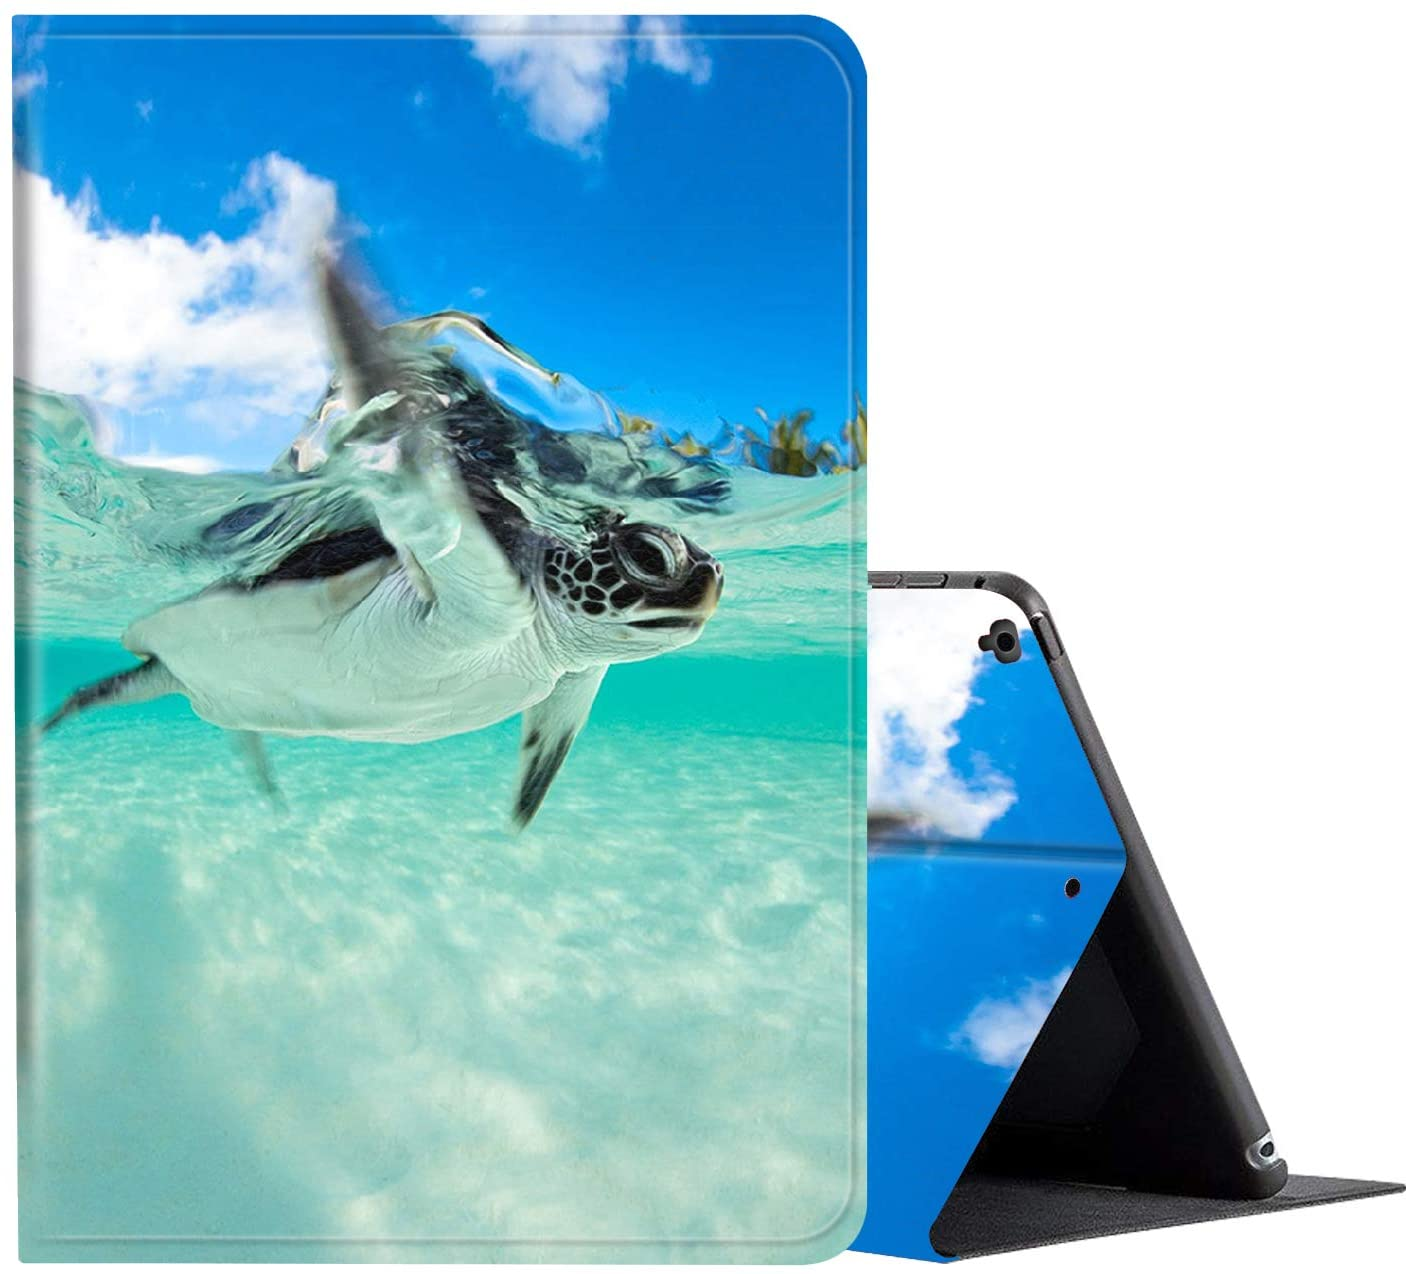 iPad 9.7 Inch 2018/2017 / IPad Air 2 / IPad Air Case, AMOOK PU Leather Adjustable Stand Cover Protection with Auto Wake/Sleep Smart Cover for Apple iPad 6th/5th Gen-Baby Sea Turtle Swimming